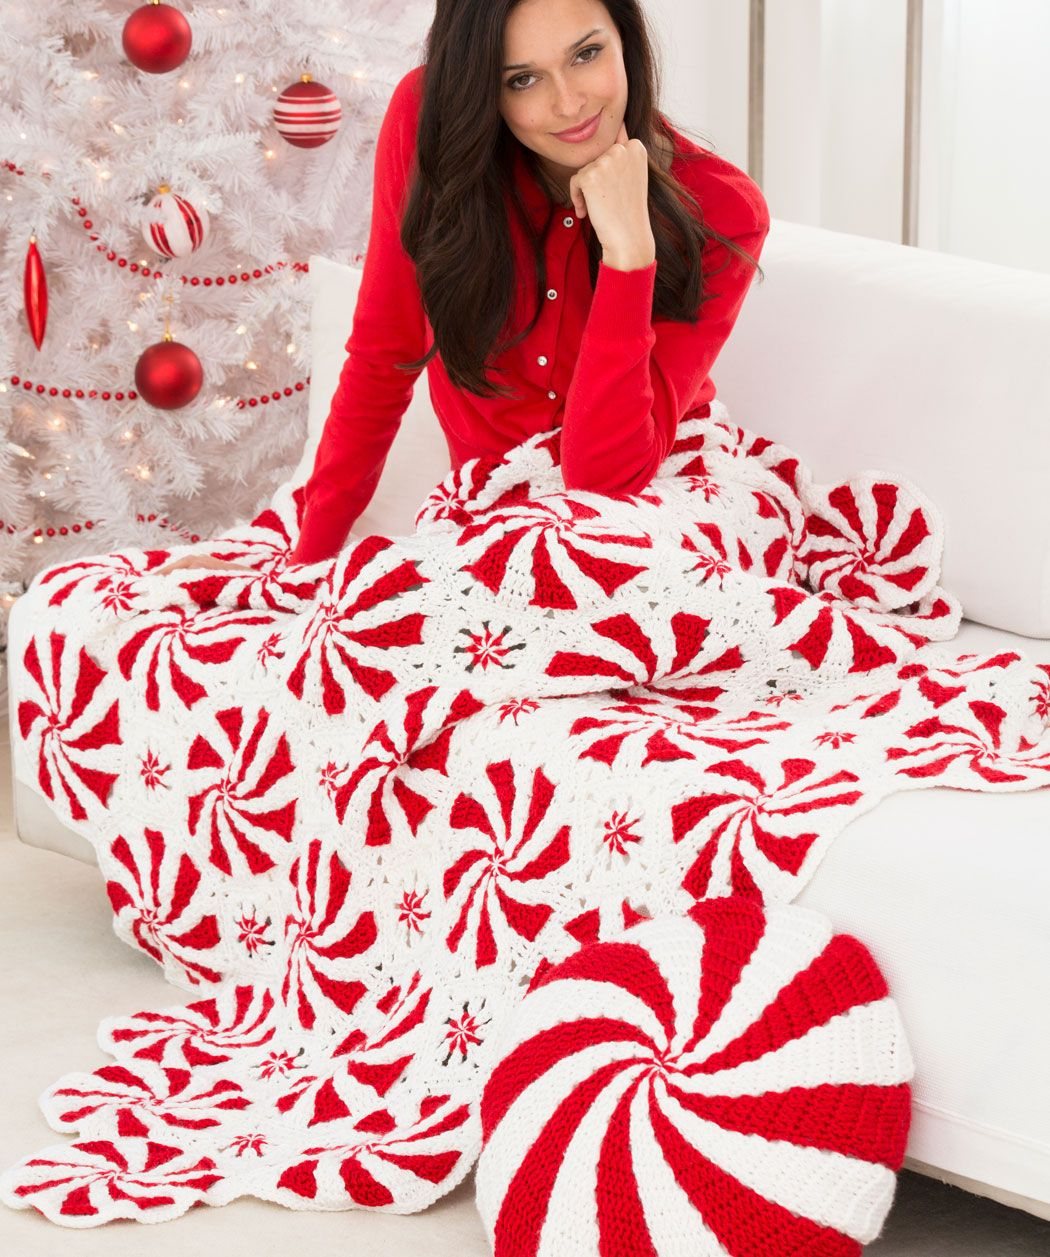 Peppermint throw and pillow free pattern from red heart cal peppermint throw and pillow free pattern from red heart cal video with mikey of christmas crochet blanketchristmas afghancrochet bankloansurffo Choice Image